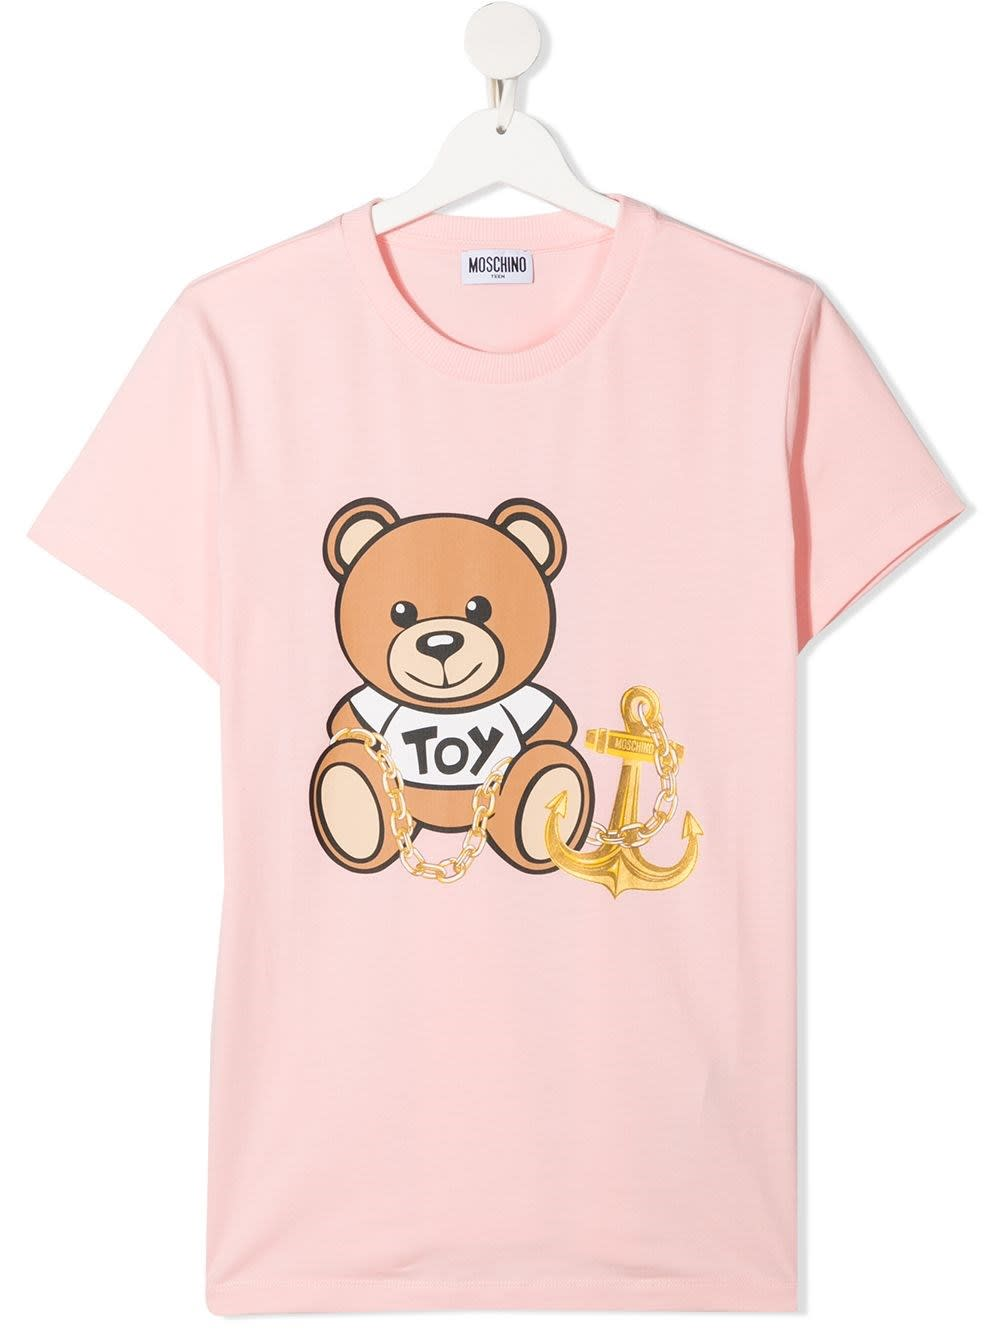 Moschino PINK T-SHIRT WITH TEDDY BEAR PRINT